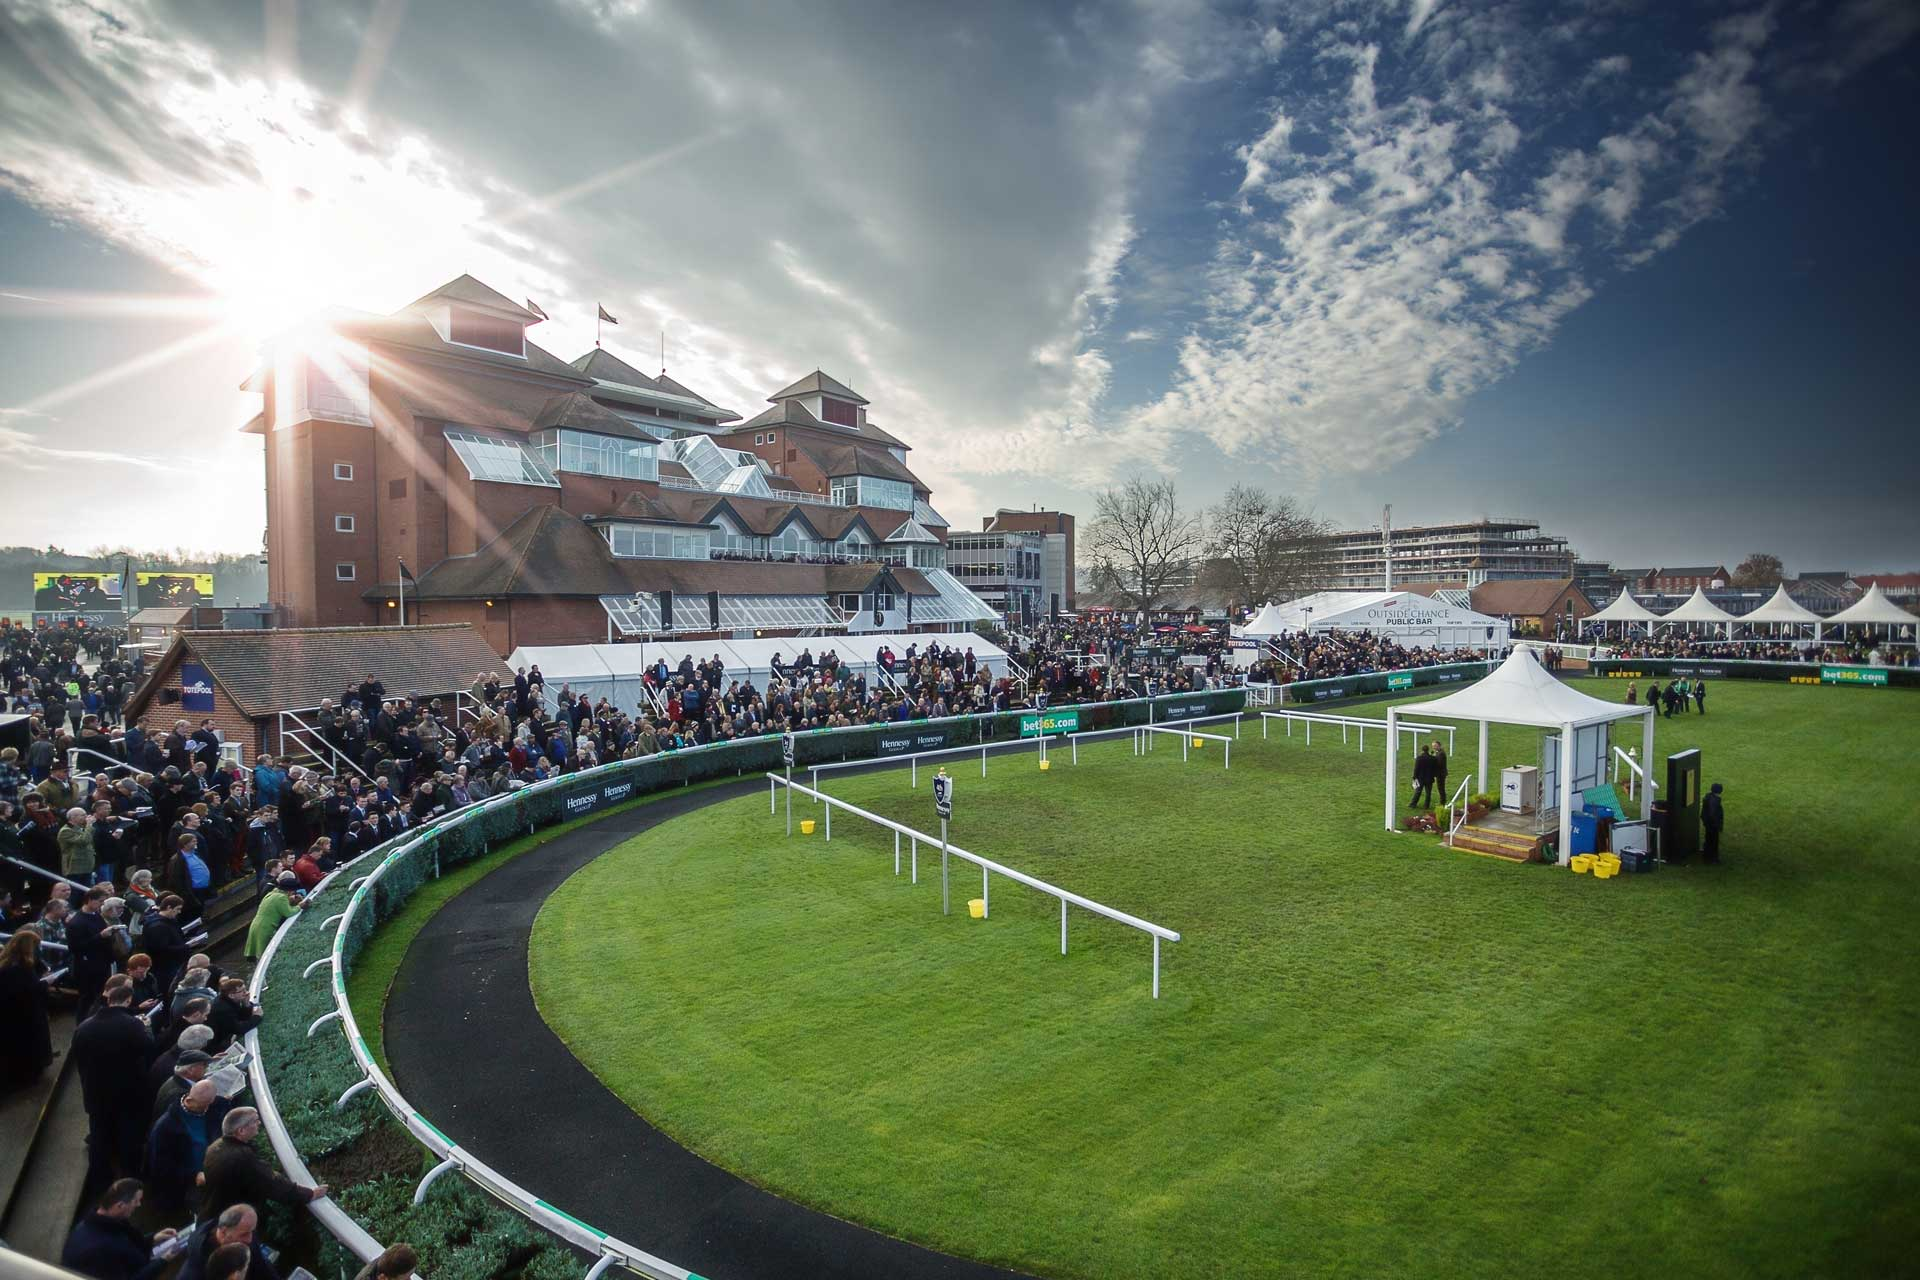 The-Lodge-Newbury-Racecoure-03